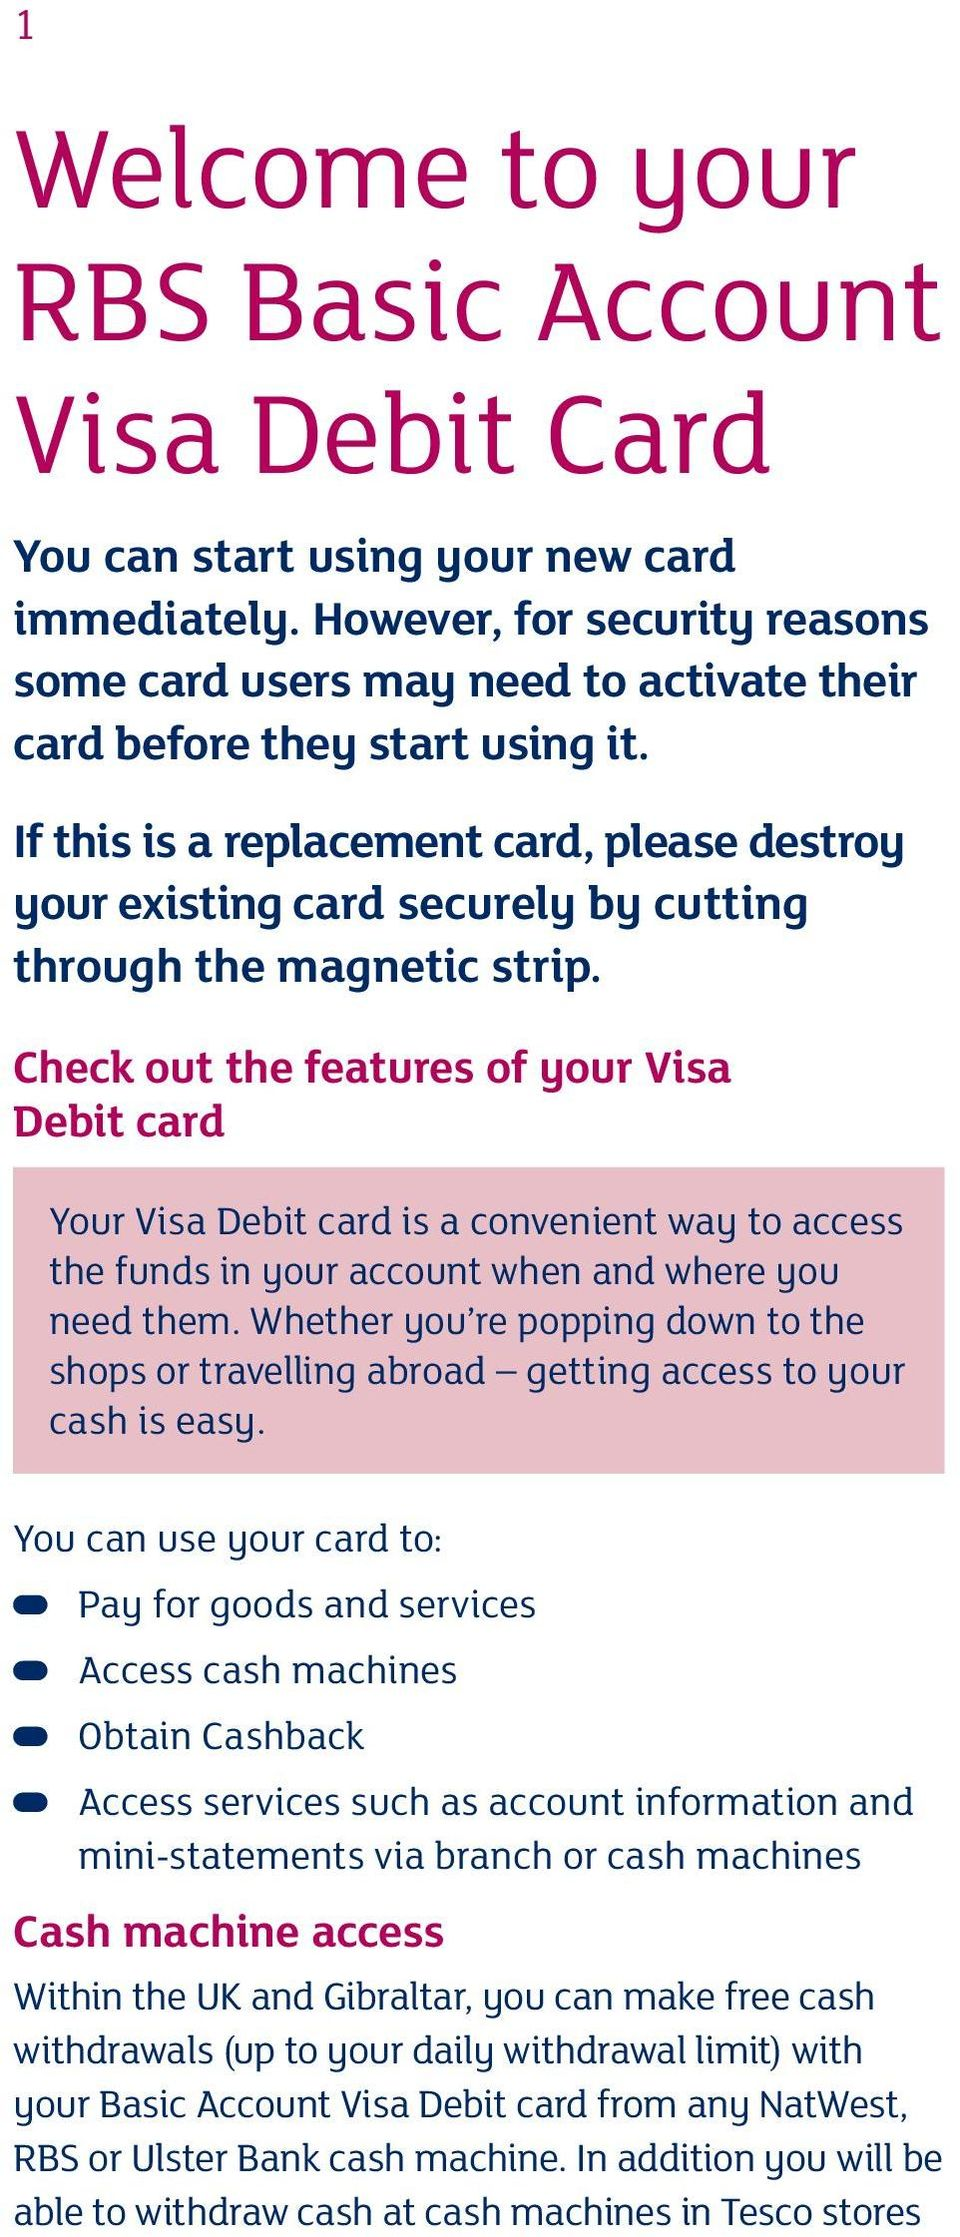 If this is a replacement card, please destroy your existing card securely by cutting through the magnetic strip.